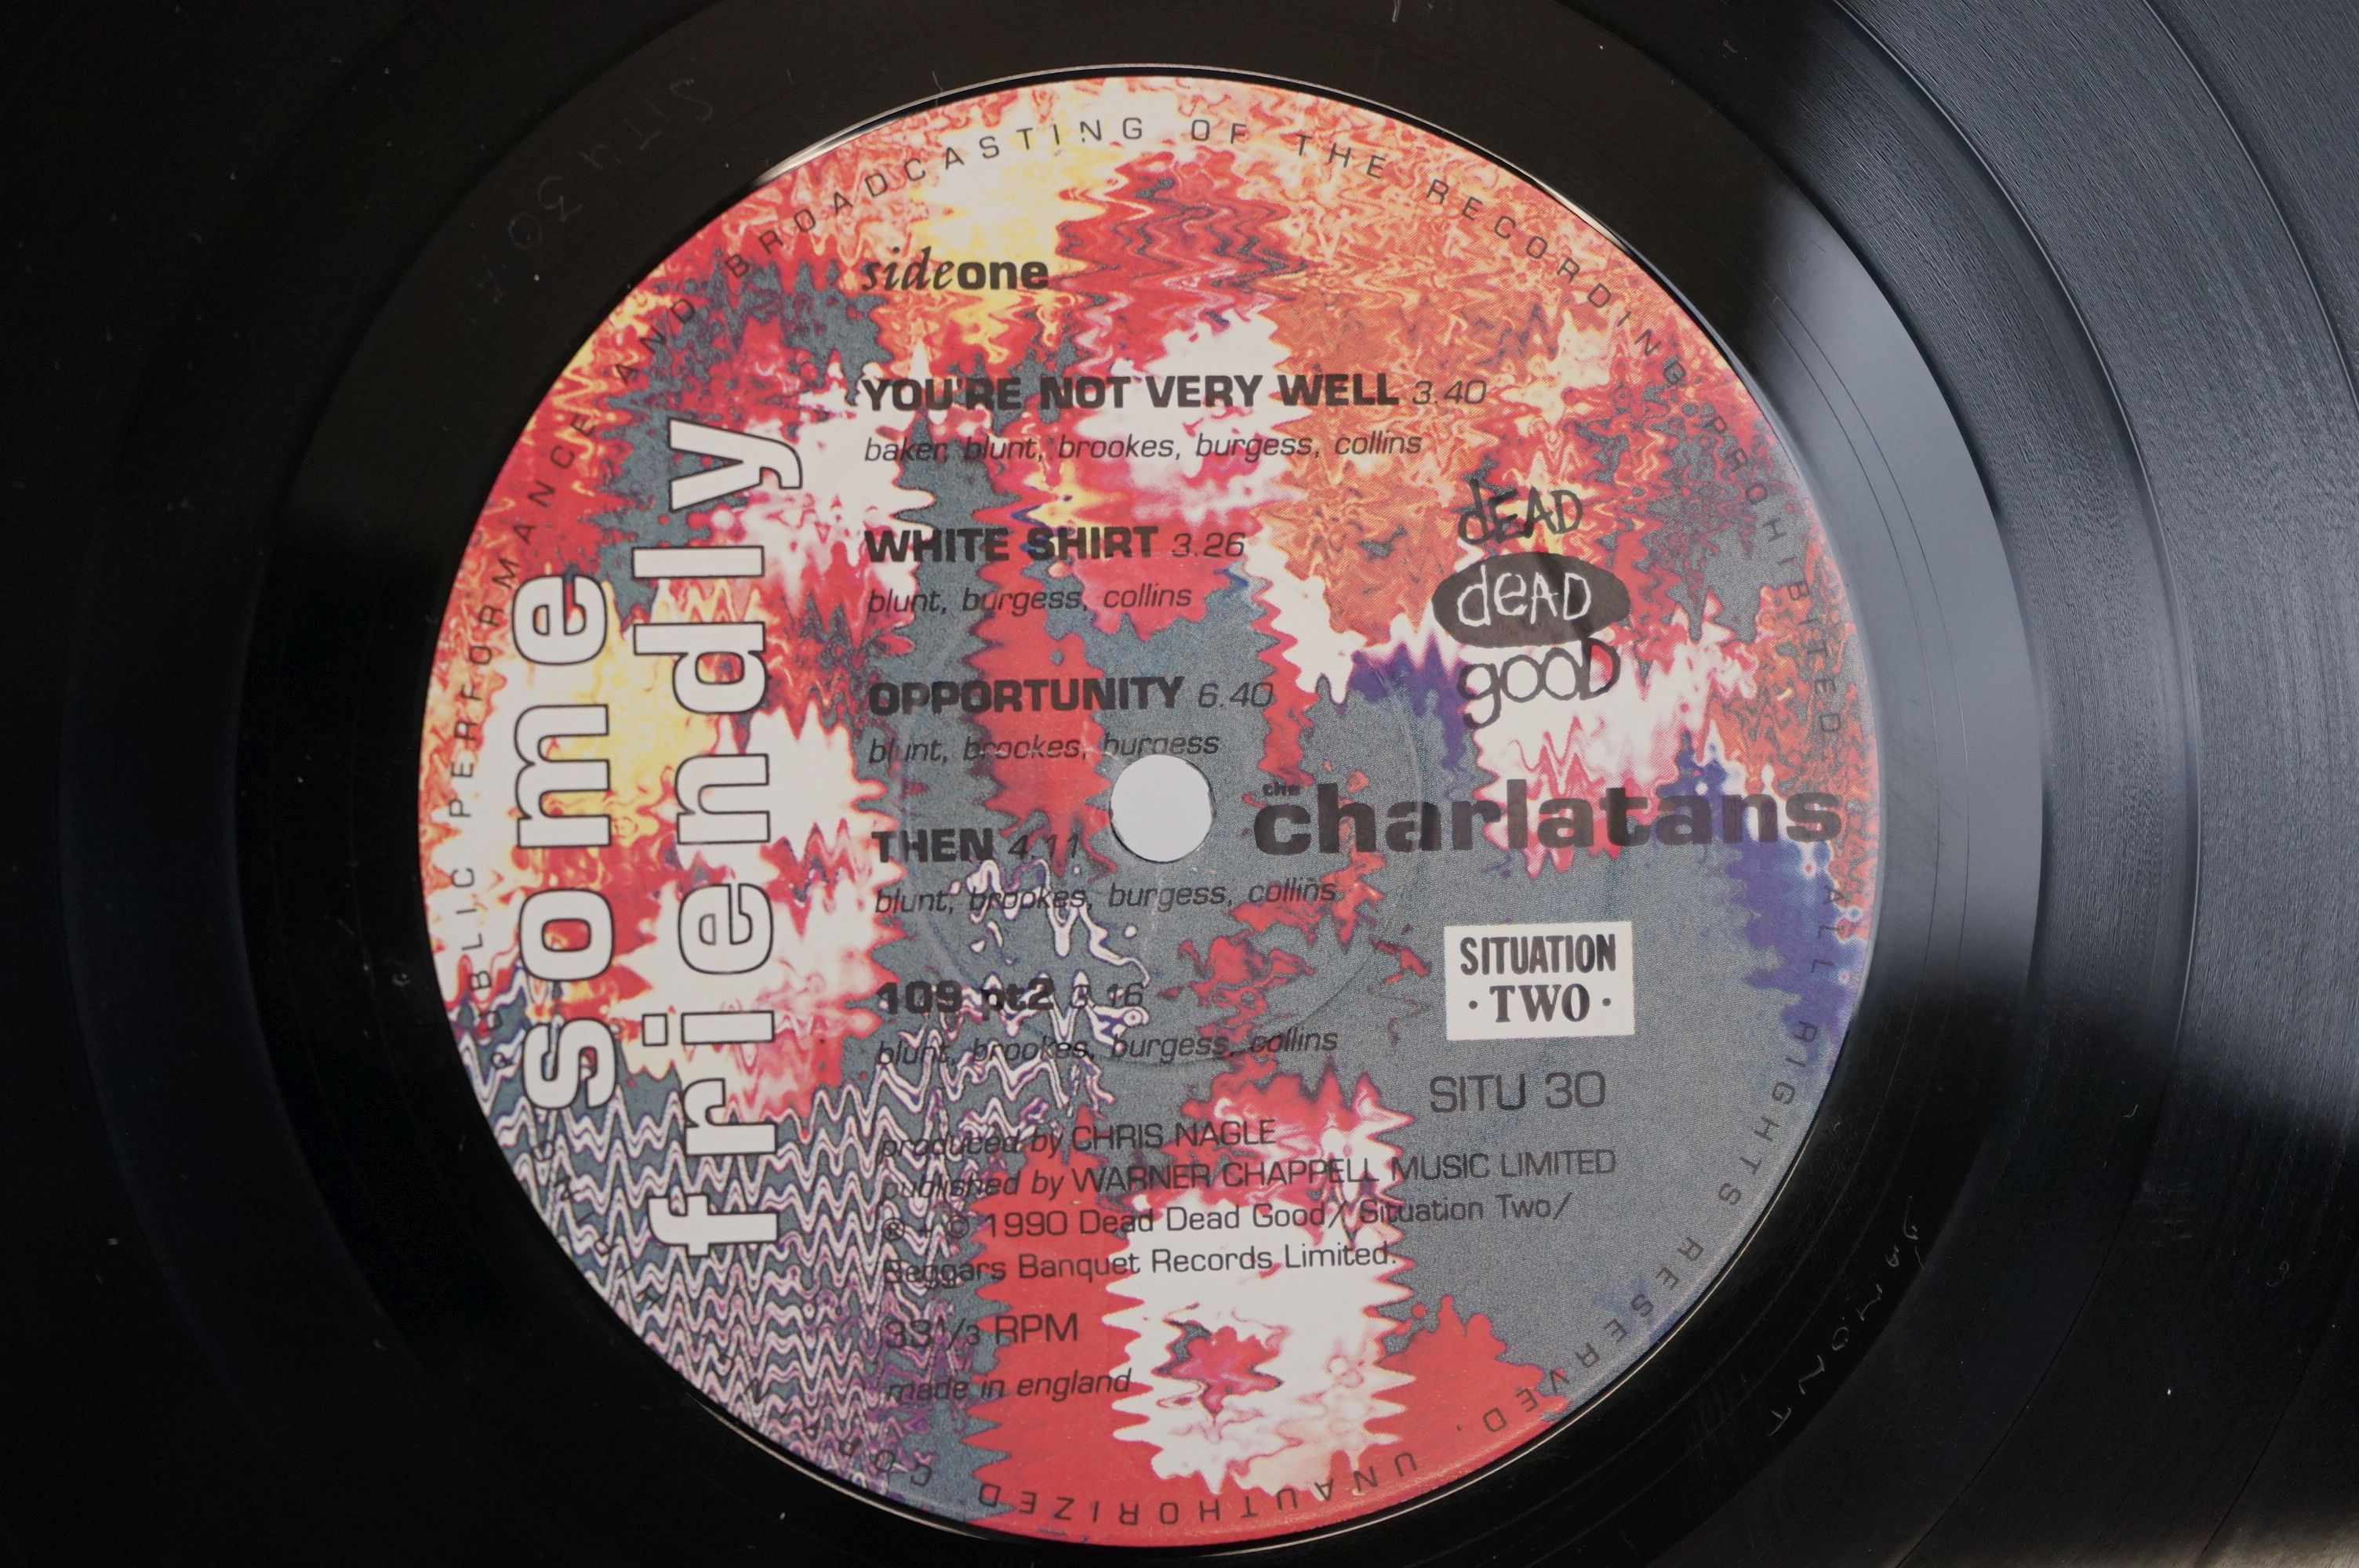 Vinyl - The Charlatans Some Friendly LP with td edn white sleeve, with inner sleeve, vinyl ex, - Image 5 of 9